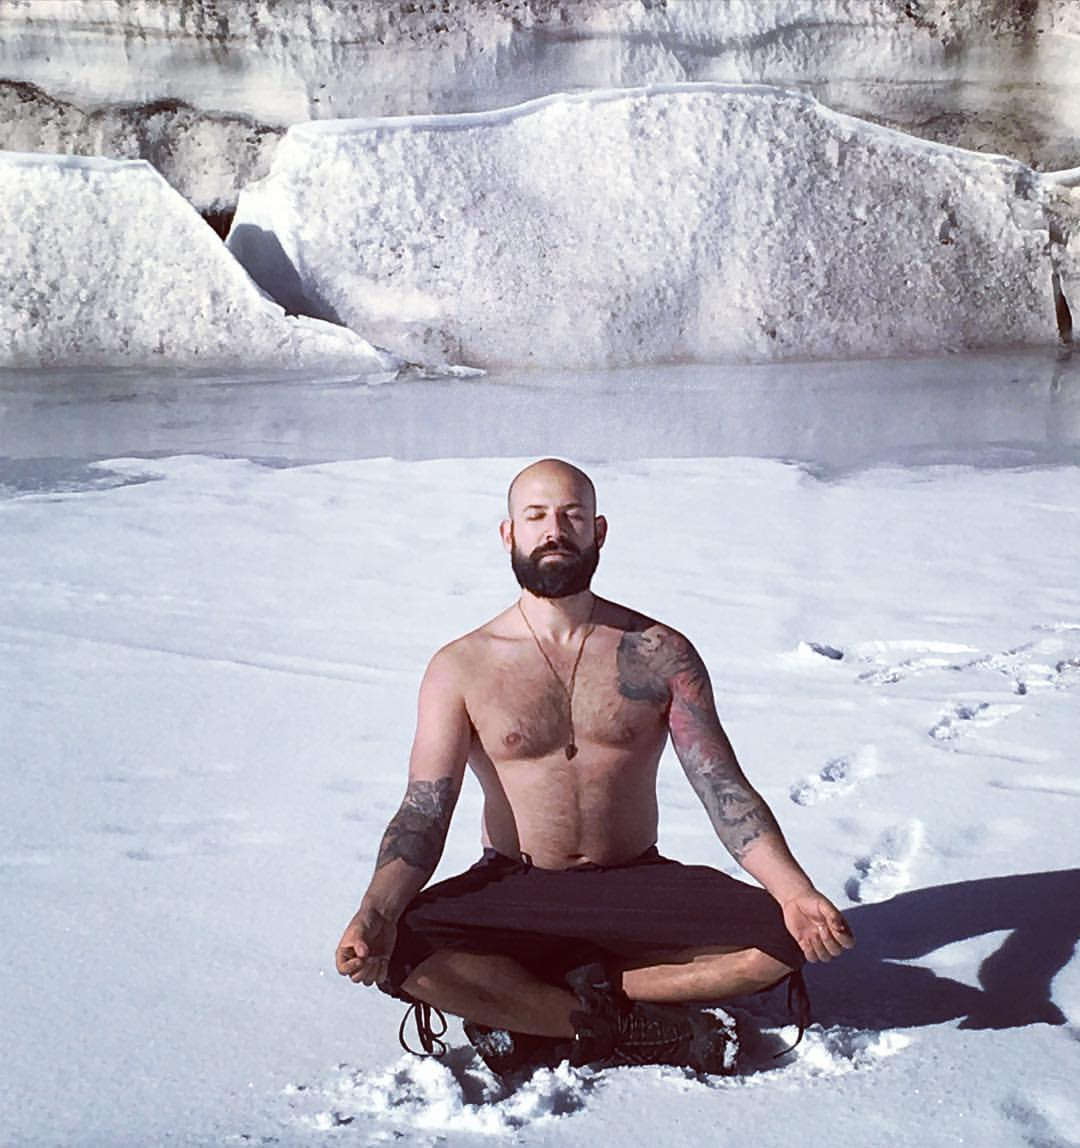 G meditating in Colorado during the Masterclass workshop with WIM